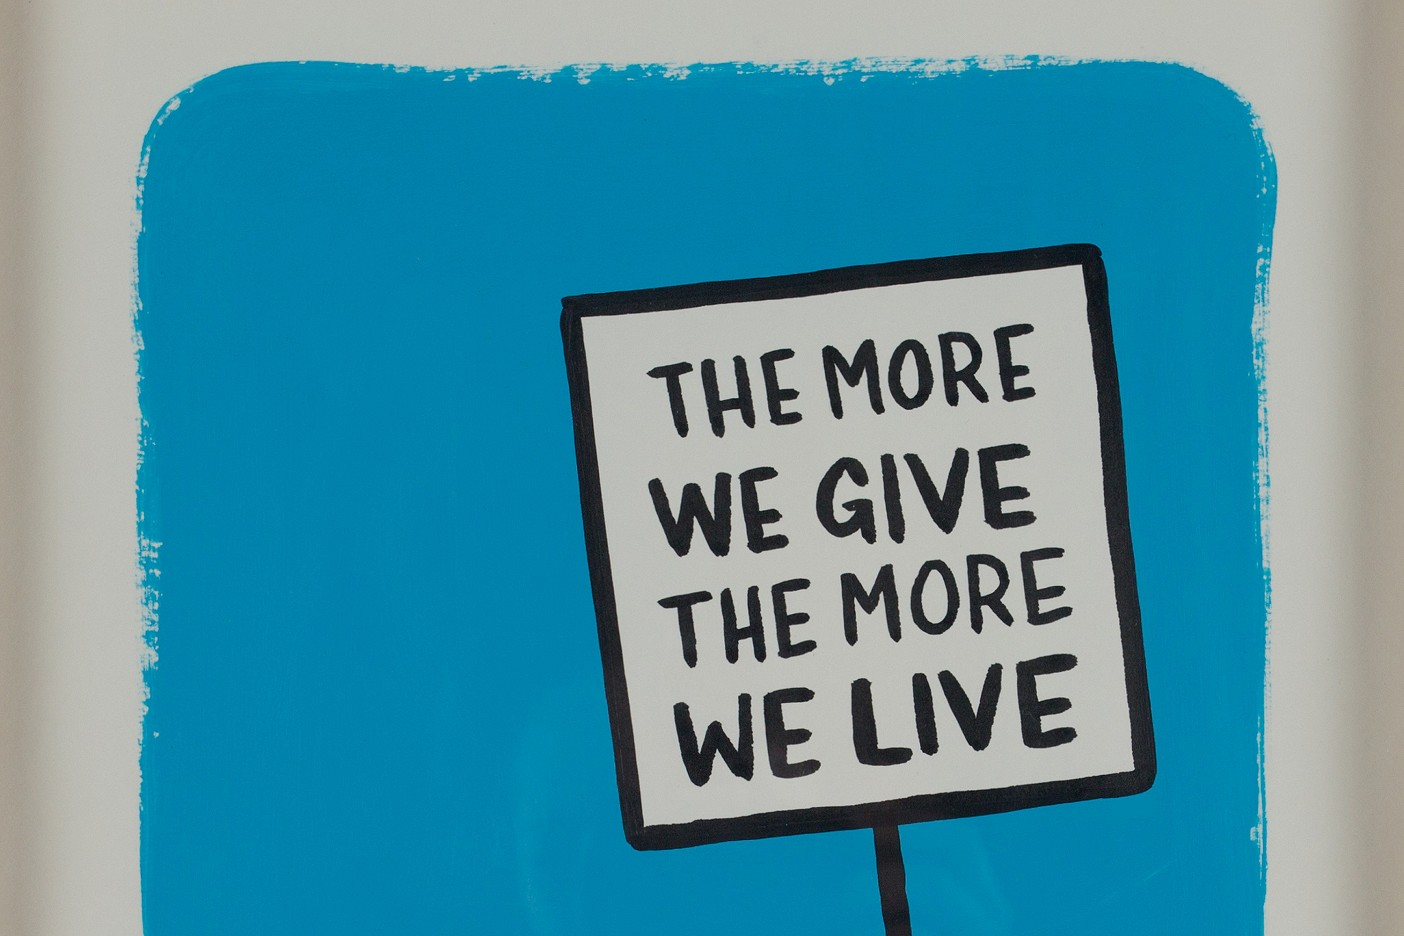 The more we give, the more live